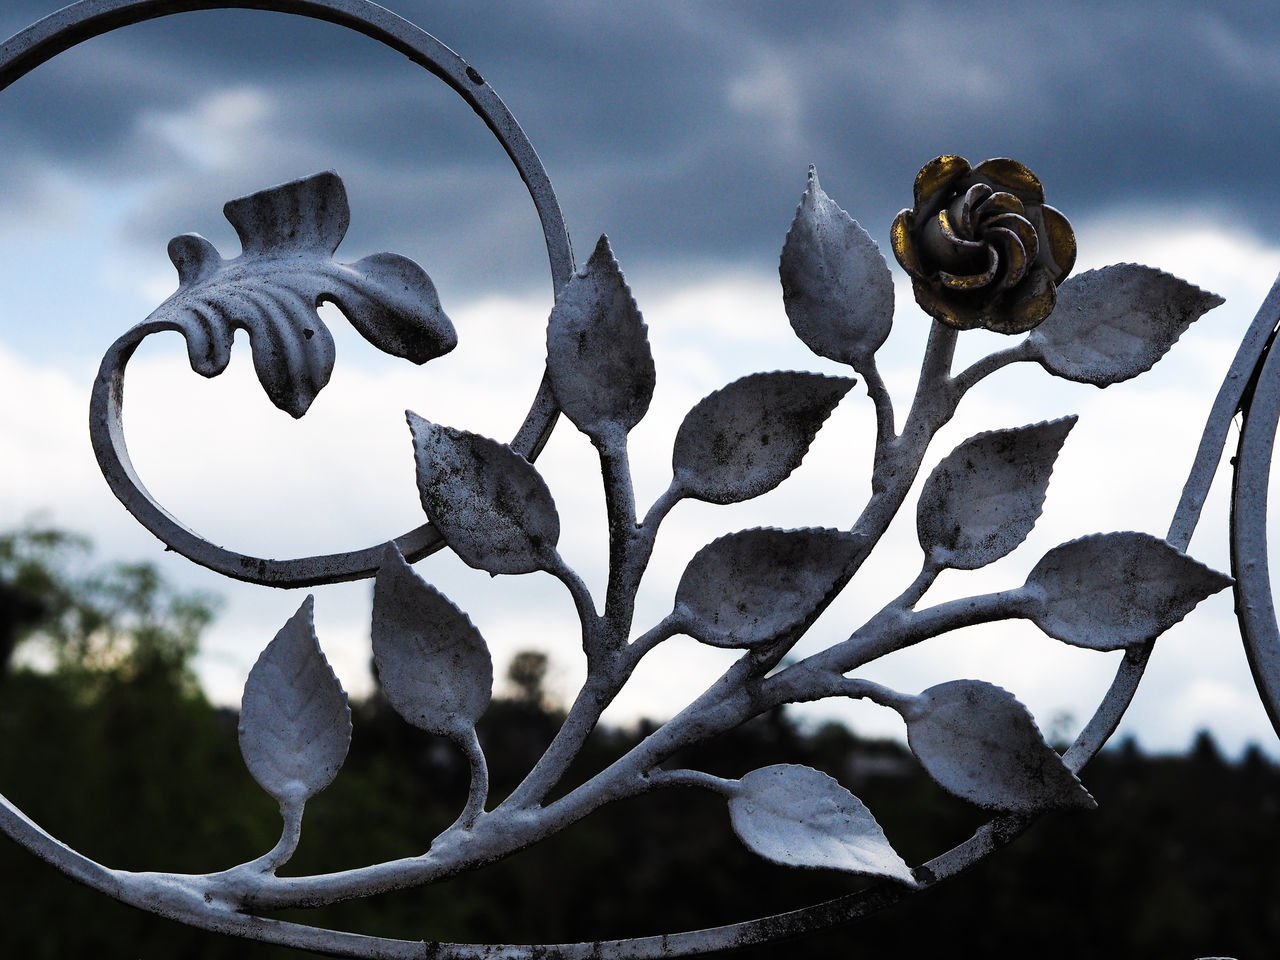 Close-Up Of Leaf And Flower Shape Metal Against Cloudy Sky